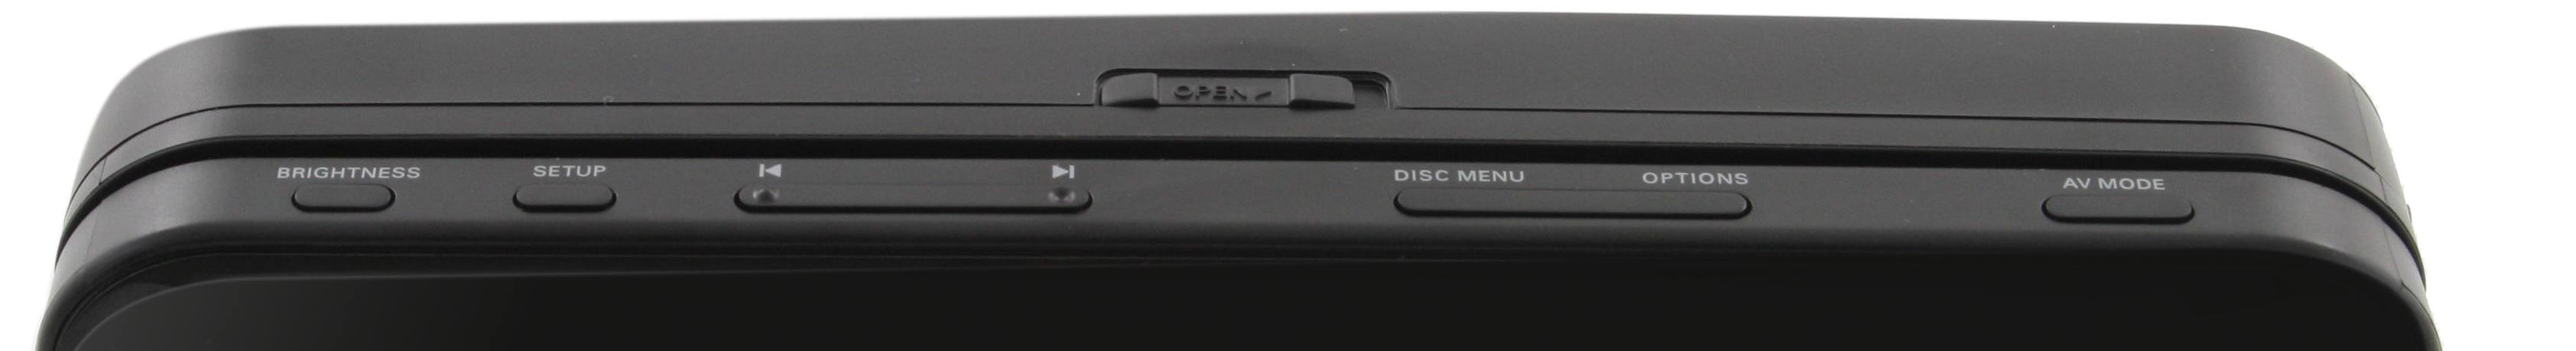 PHILIPS - PD 7042/12